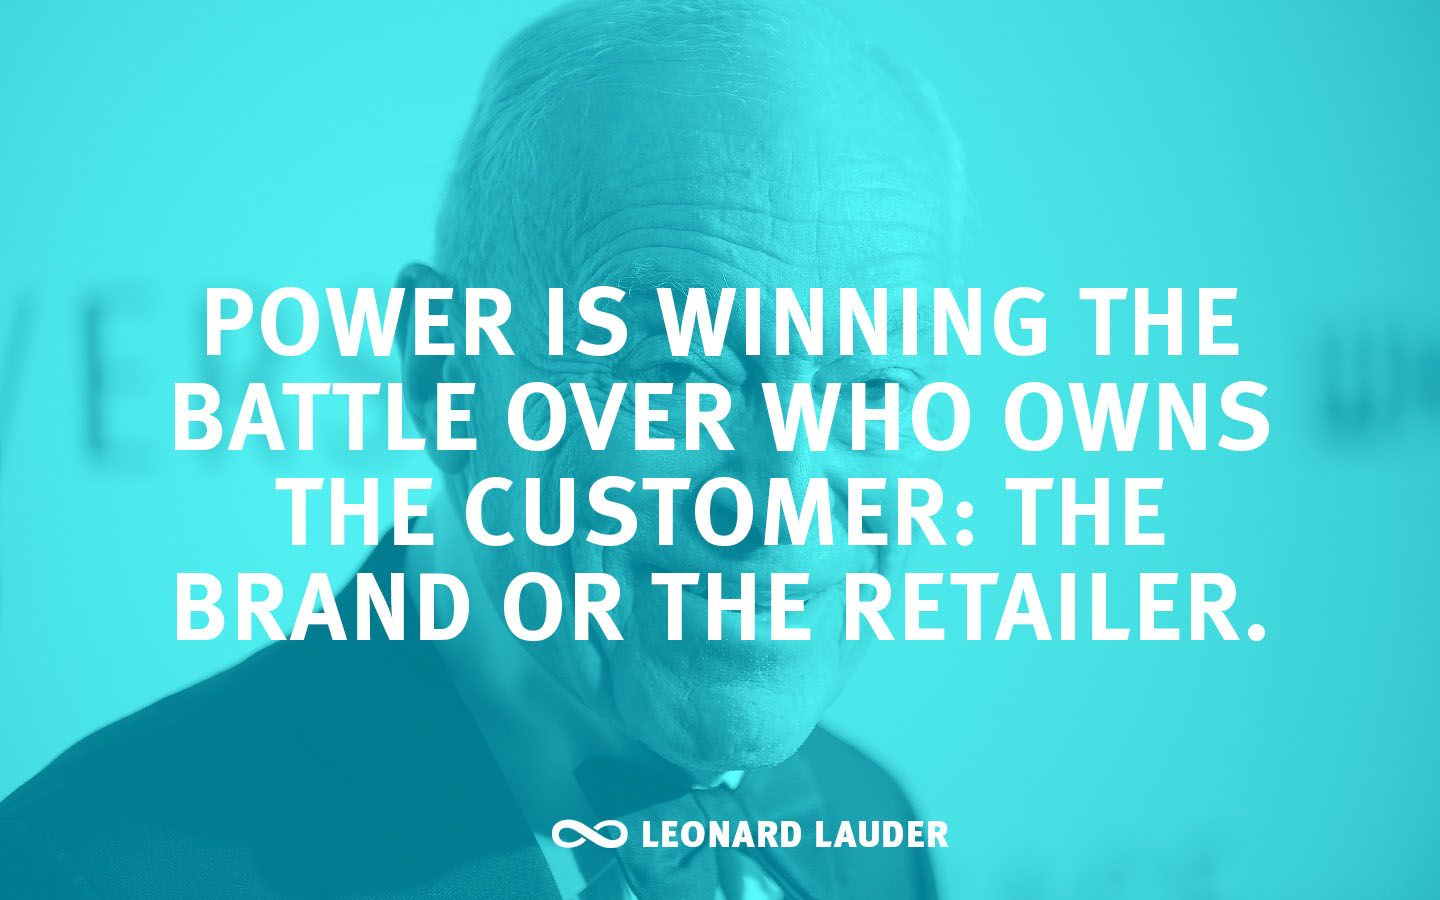 """""""Power is winning the battle over who owns the customer: the brand or the retailer."""" —Leonard Lauder"""